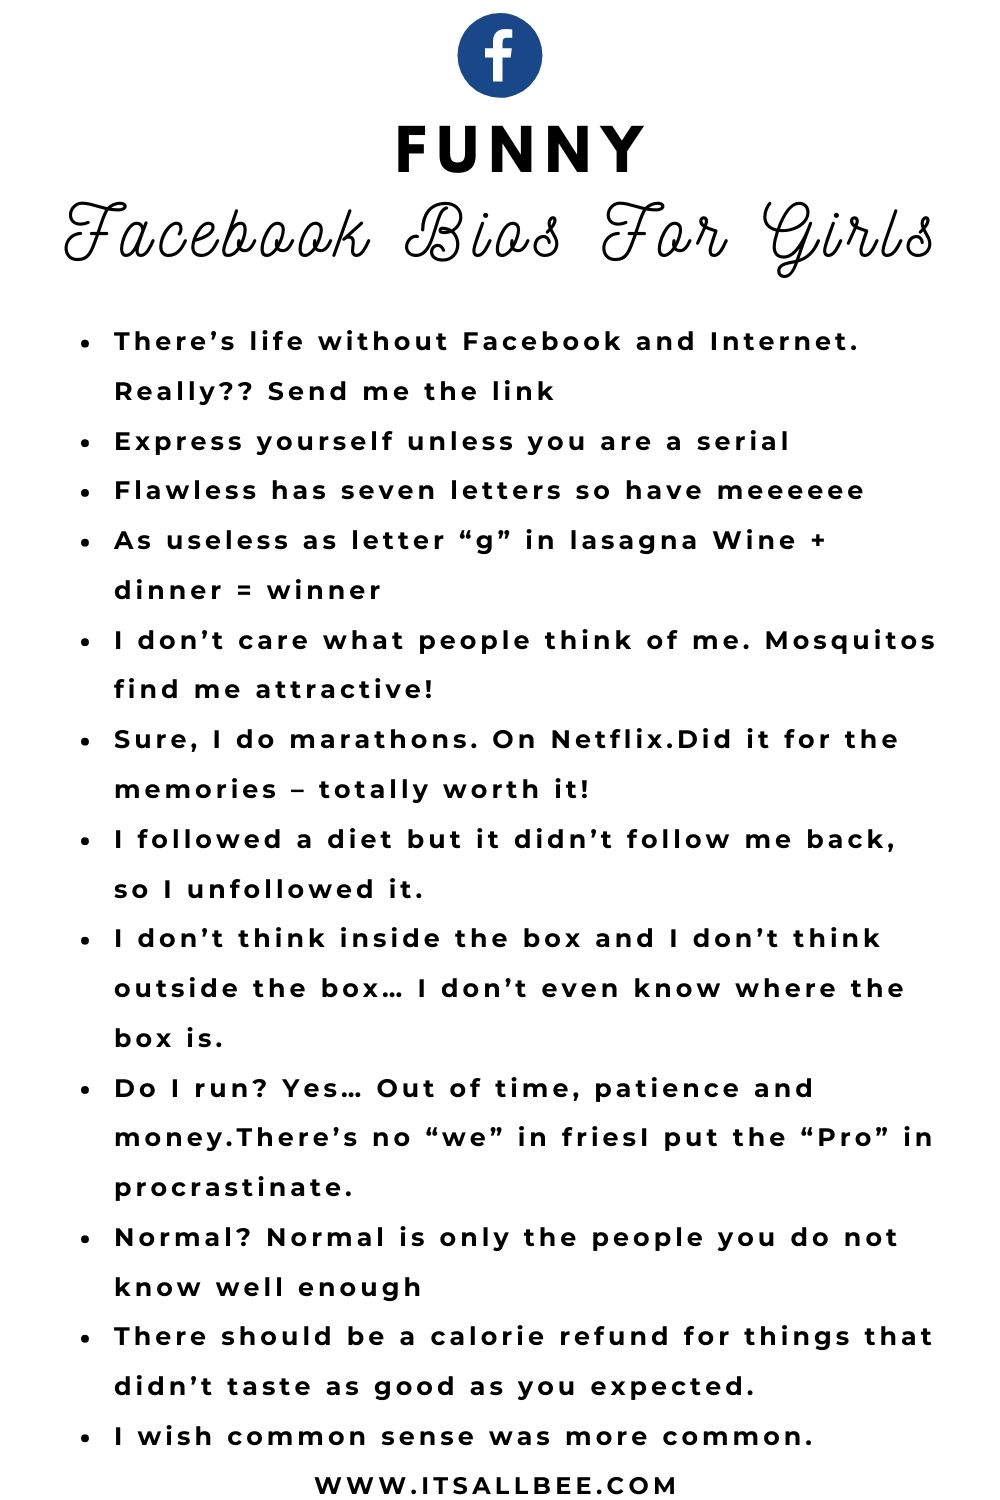 100 Cool Witty Sassy Facebook Bios For Girls Itsallbee Travel Blog In 2020 Facebook Bio Quotes Facebook Bio Bio Quotes